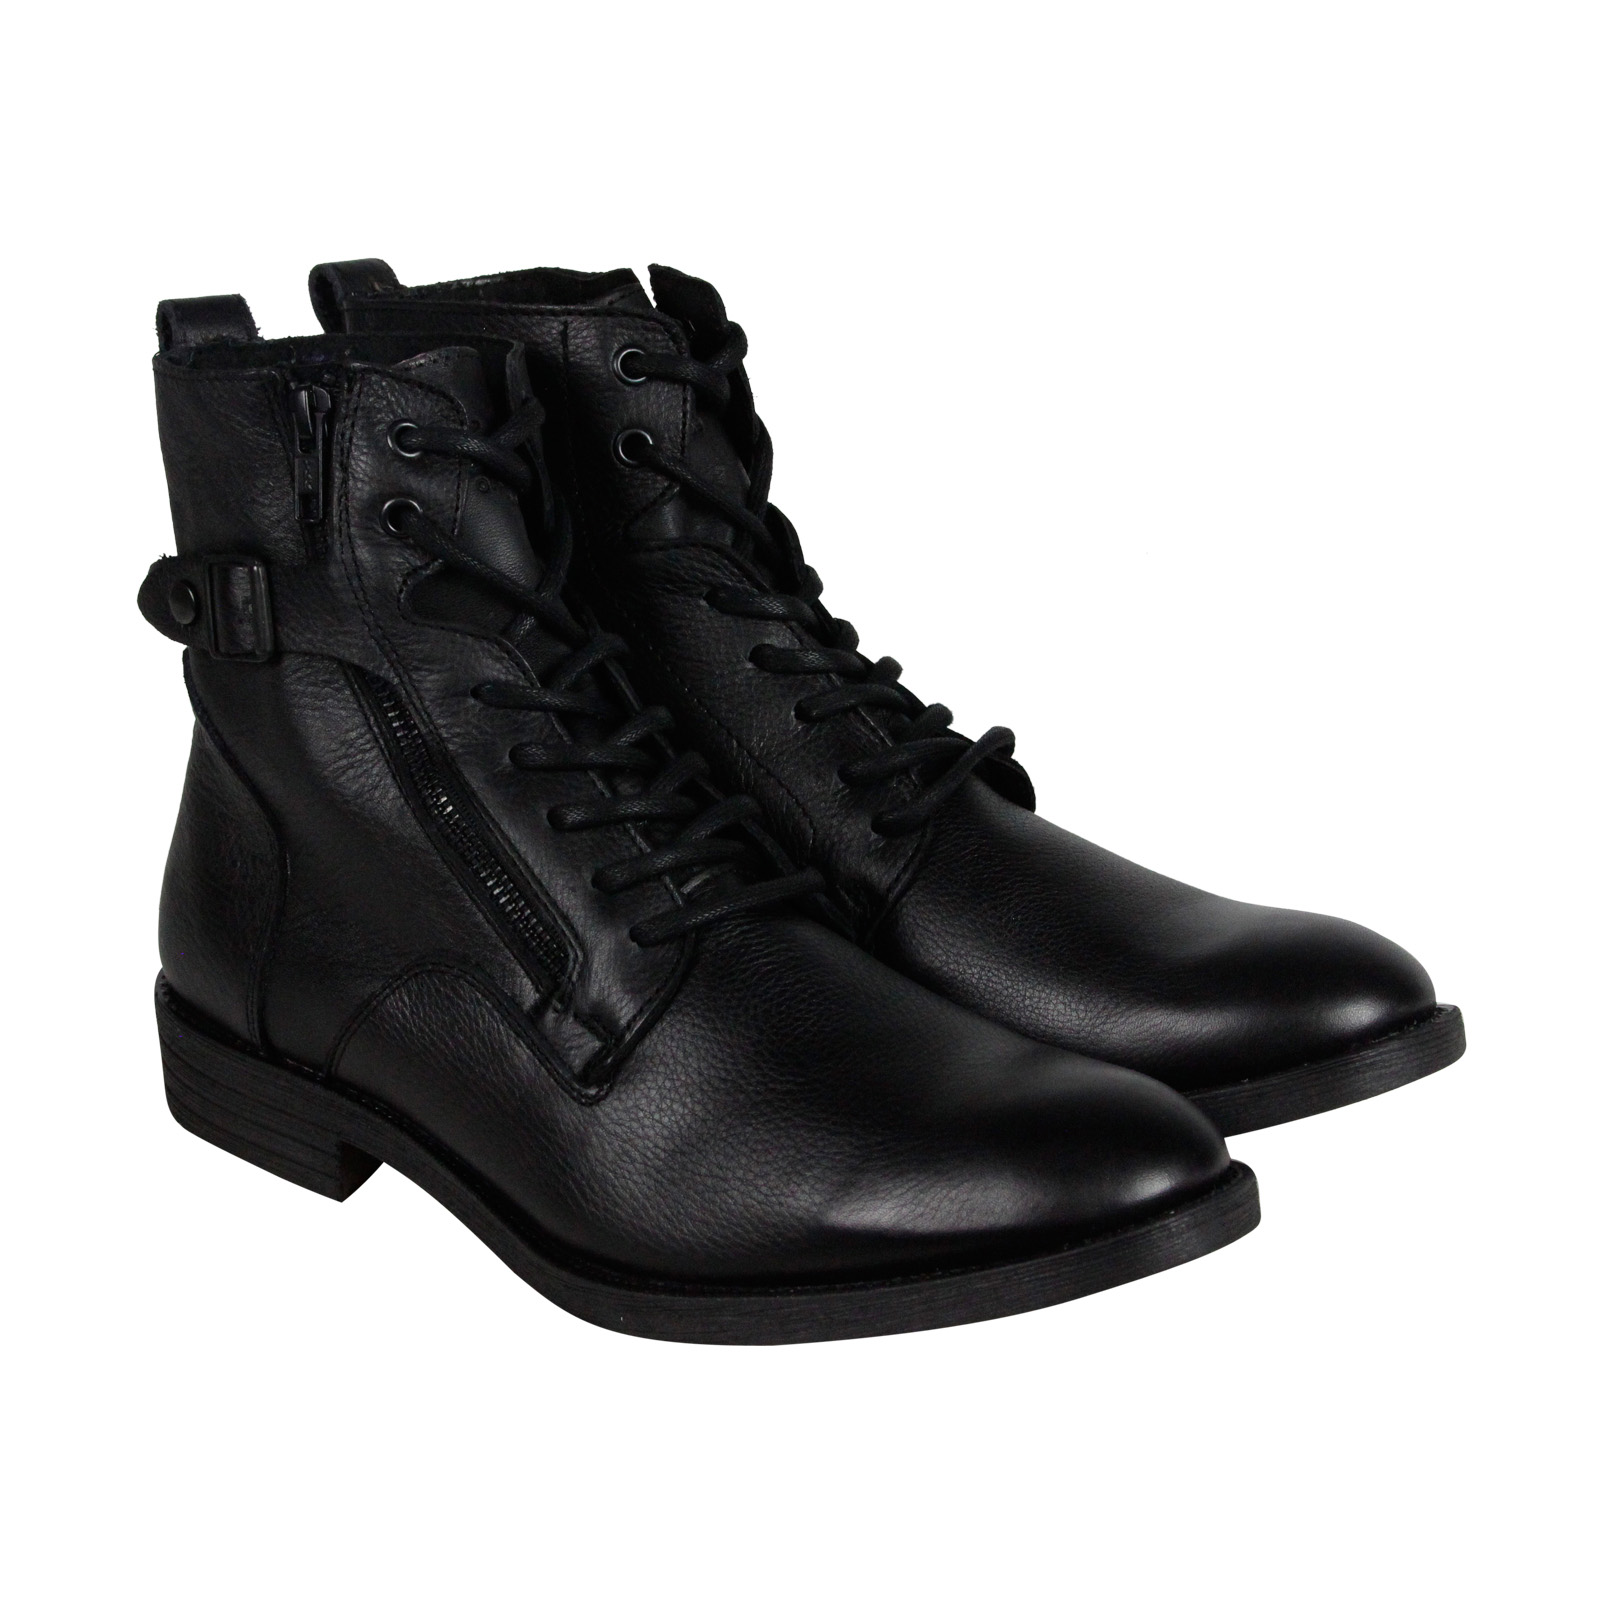 GBX , GBX Mens Trust Leather Boots Combat Military Style